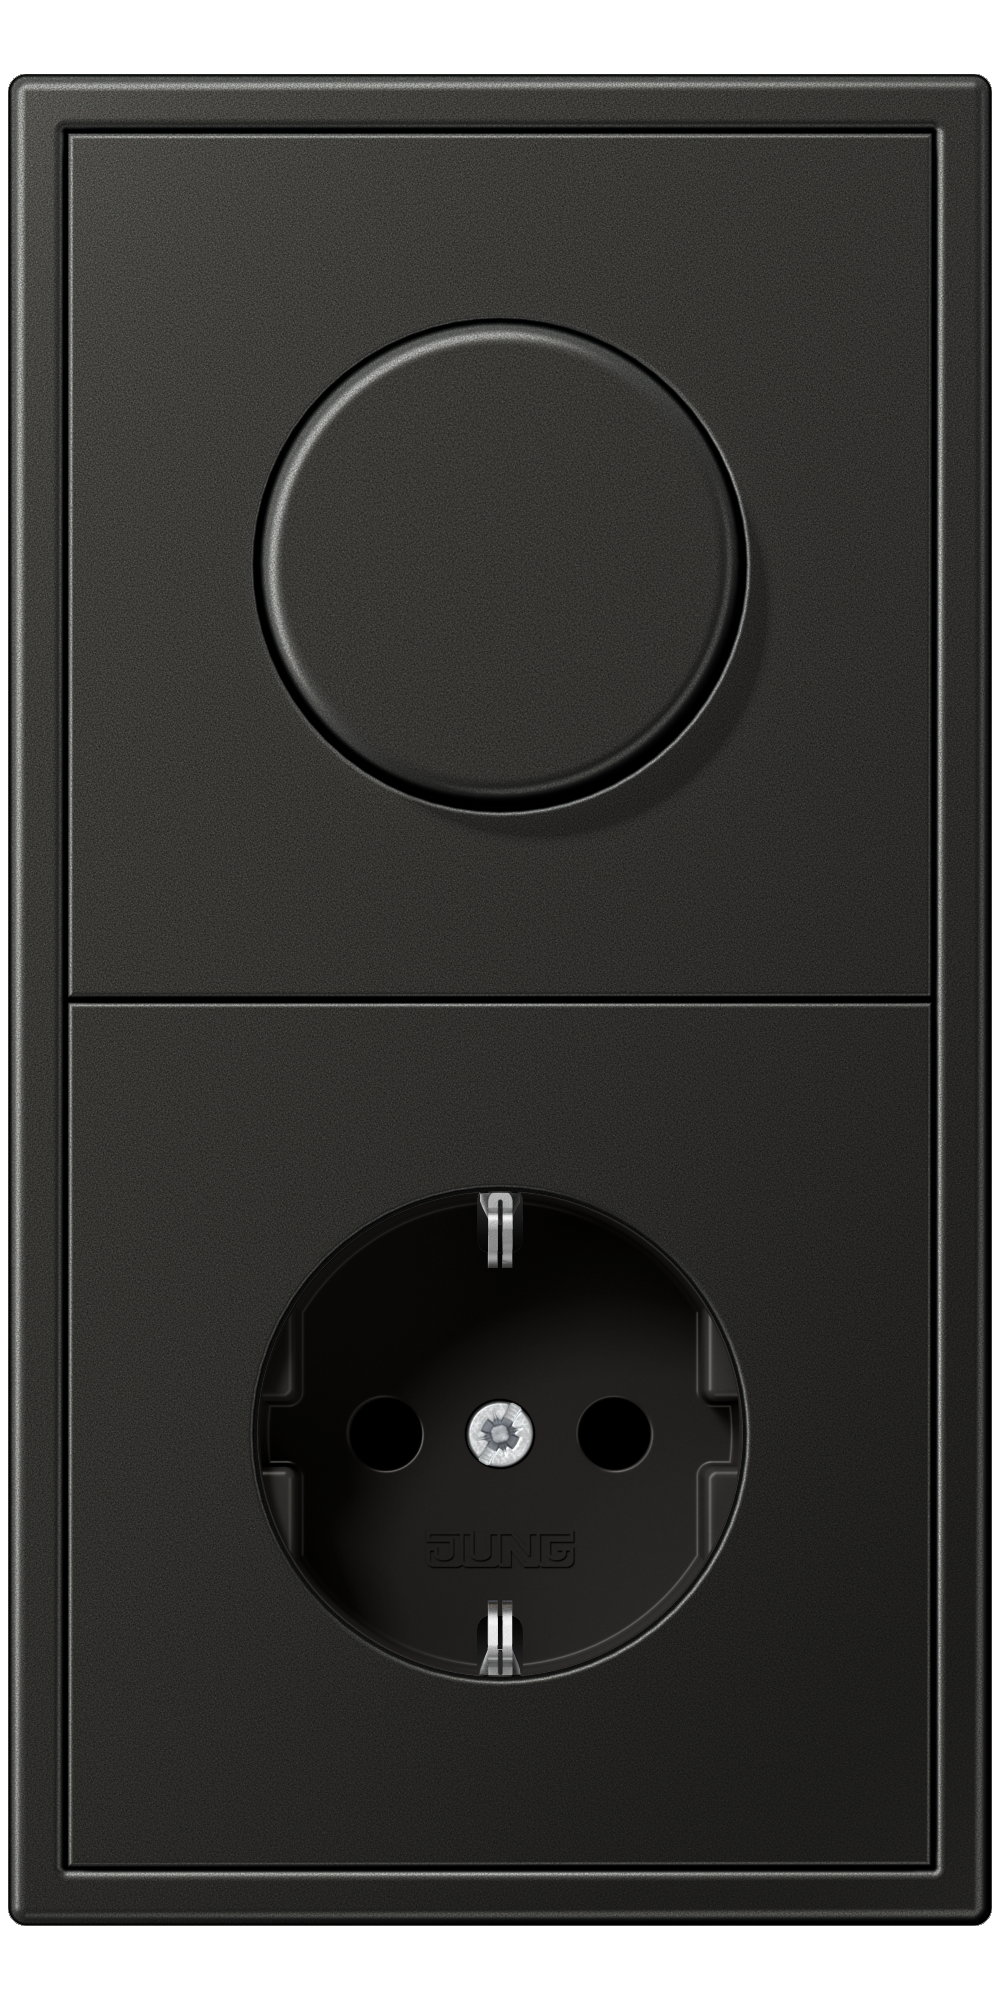 JUNG_LS990_anthracite_dimmer-socket